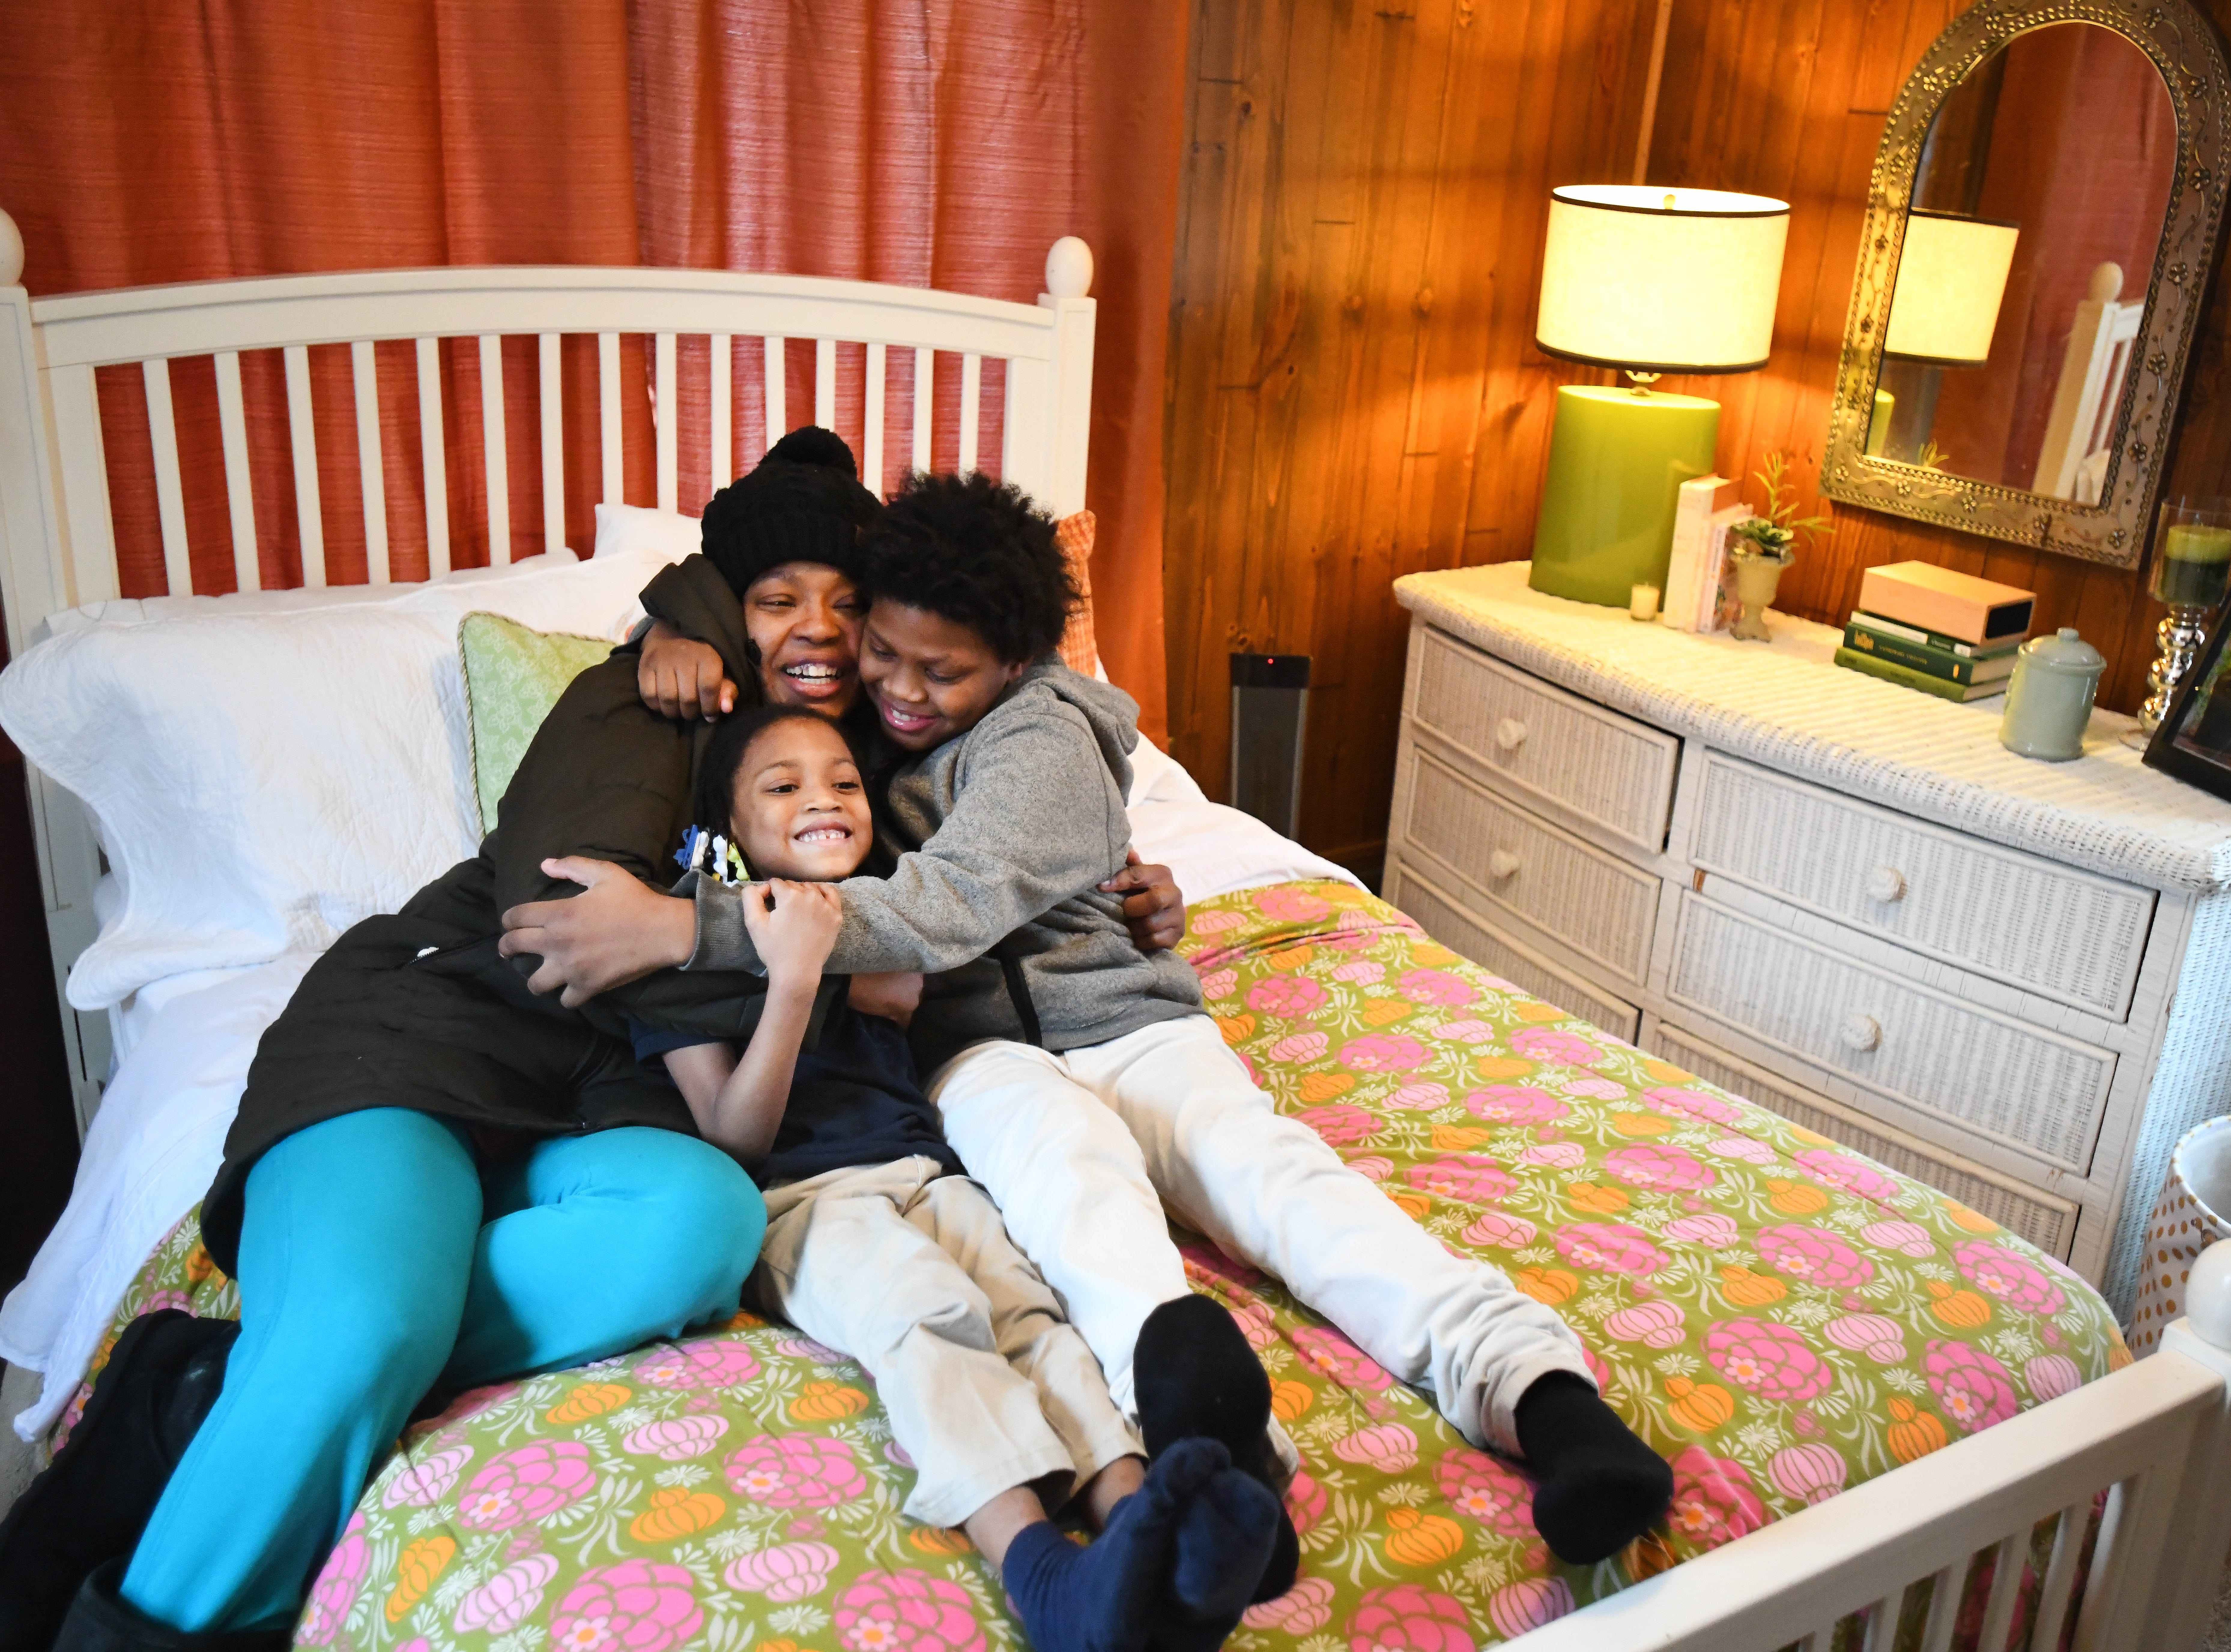 "Jamiliah Powers-McCoy hugs her daughter Ja'Kayla, 7, and son Jai'Vonte, 12, on the bed in her newly furnished bedroom. ""I won't have to sleep on the floor no more,"" she said. Humble Design, a nonprofit that furnishes homes for people coming out of homelessness unveiled their 1000th home in Detroit on Feb. 27, 2019."